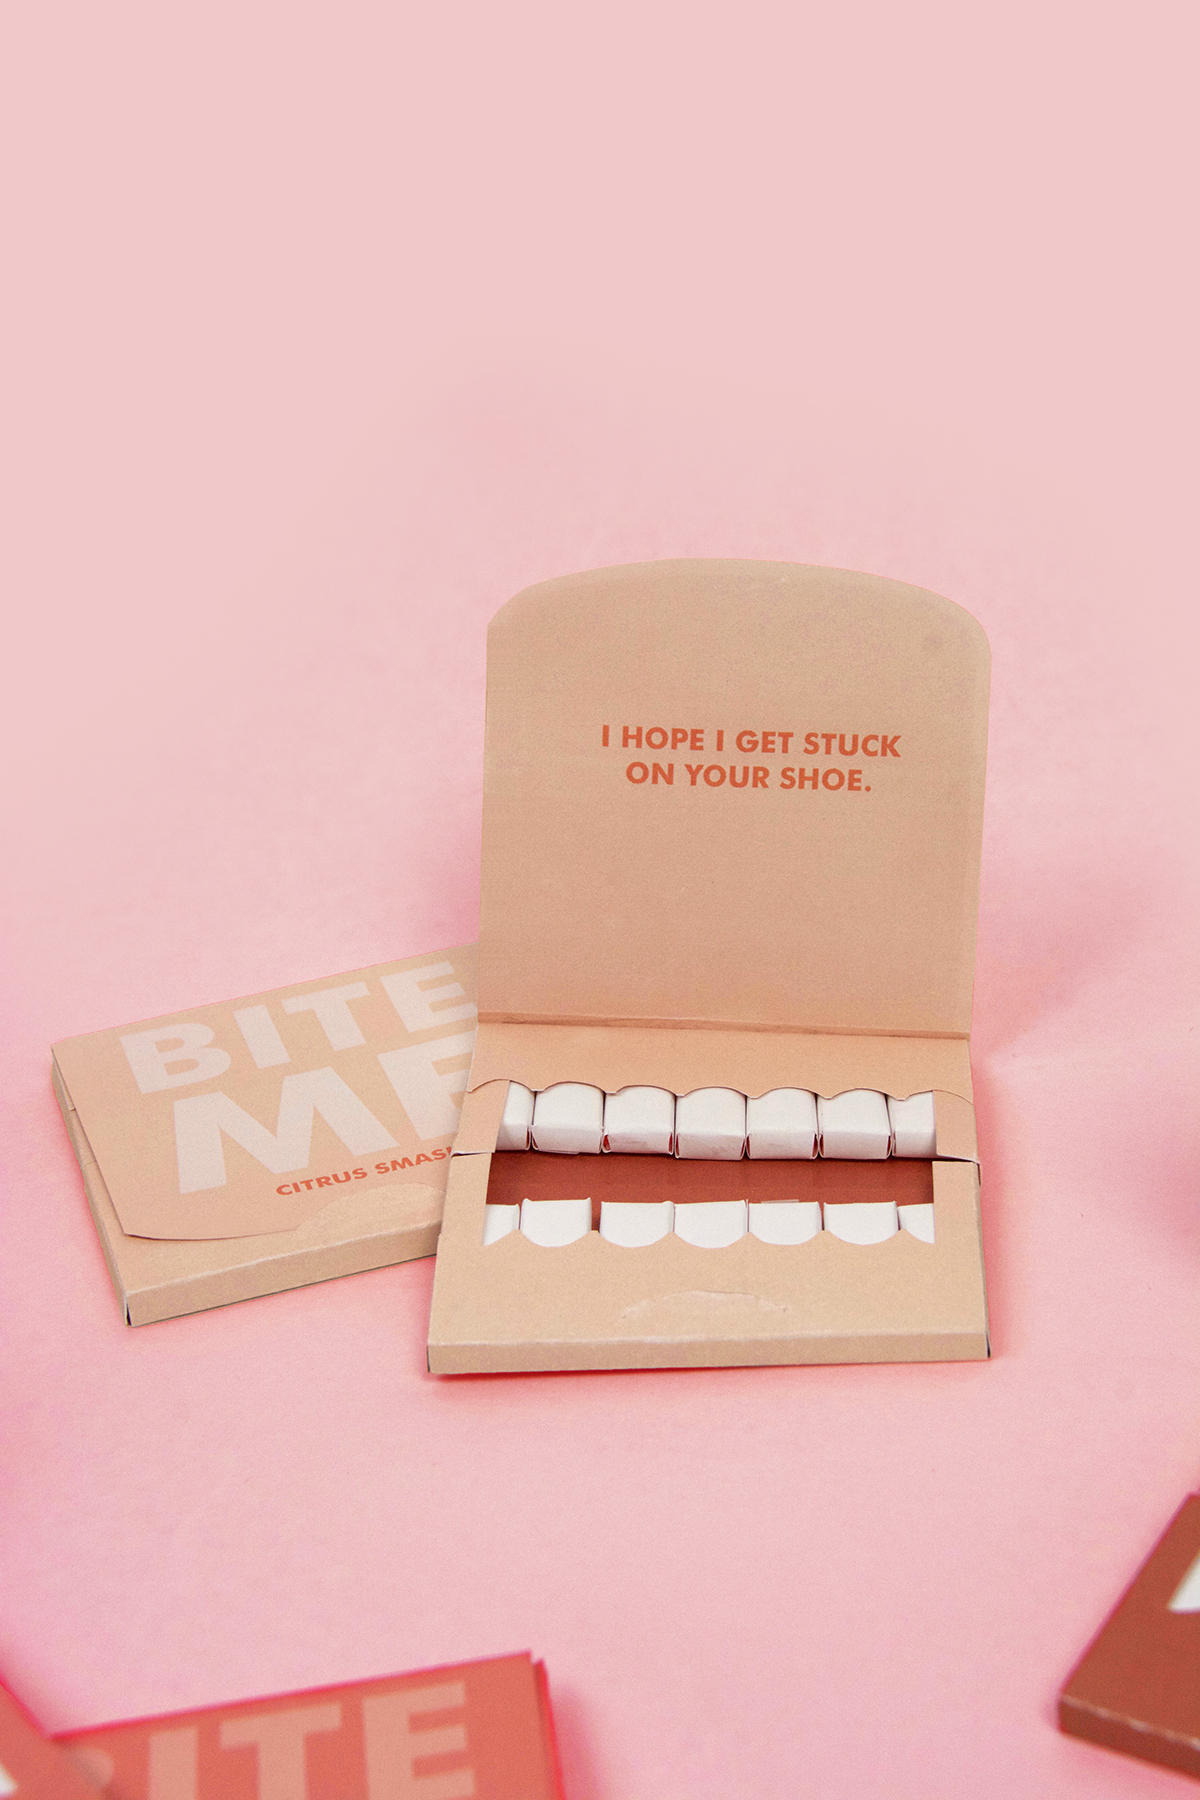 Packaging gum pink Bite Me insult sarcasm Mouth wit